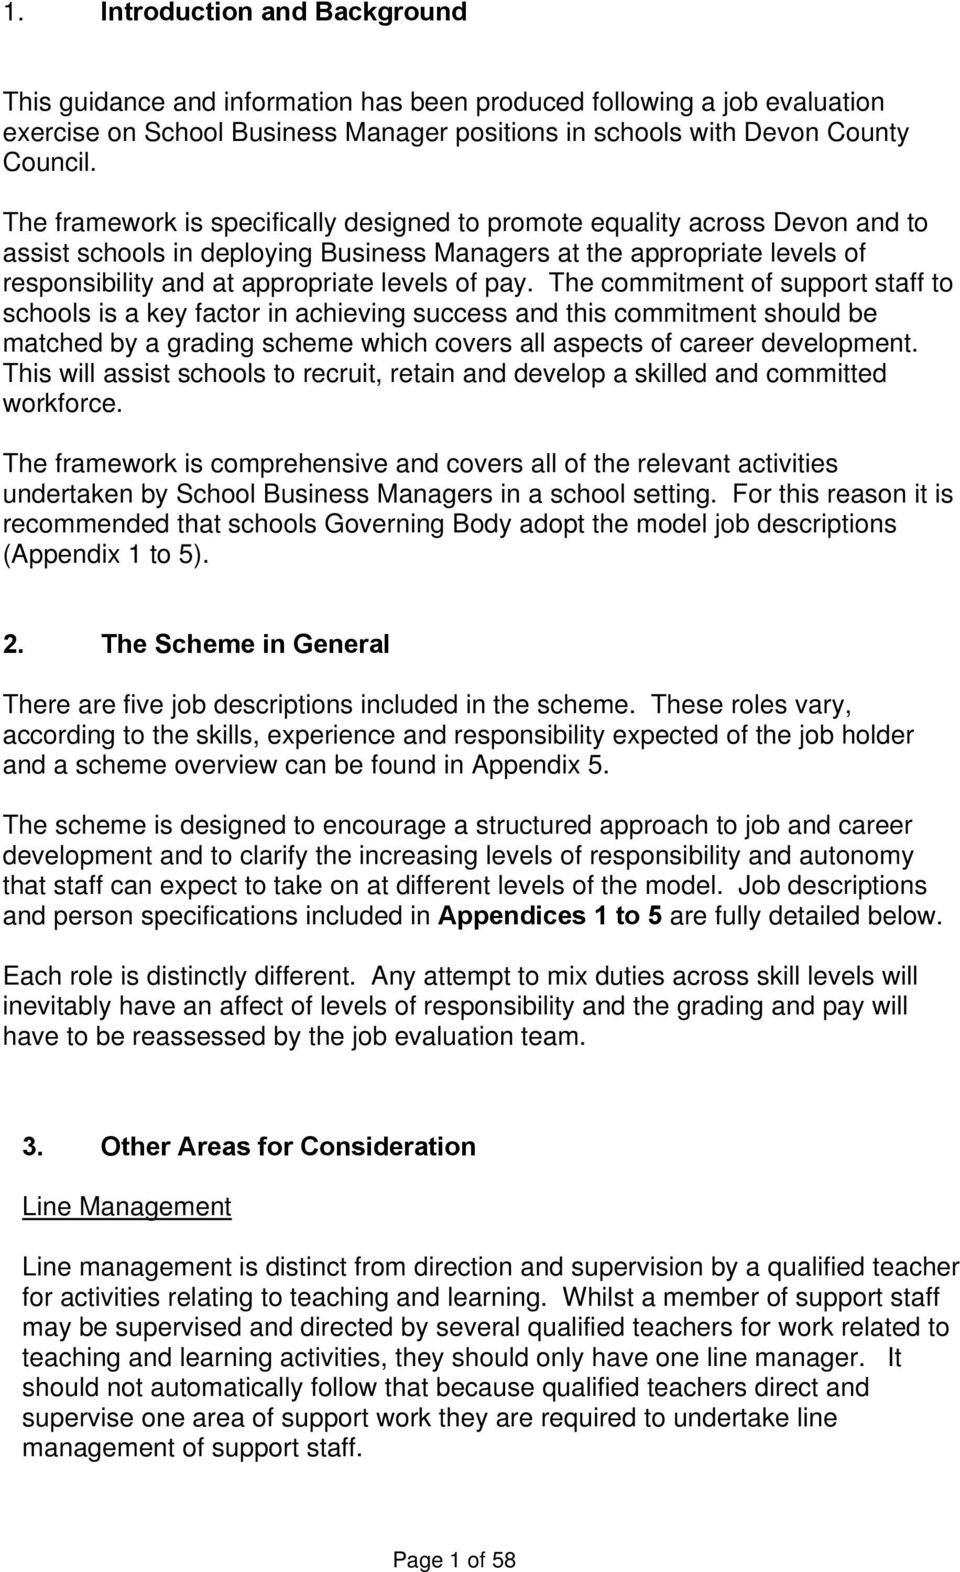 School Business Manager Information And Guidance Pdf Free Download